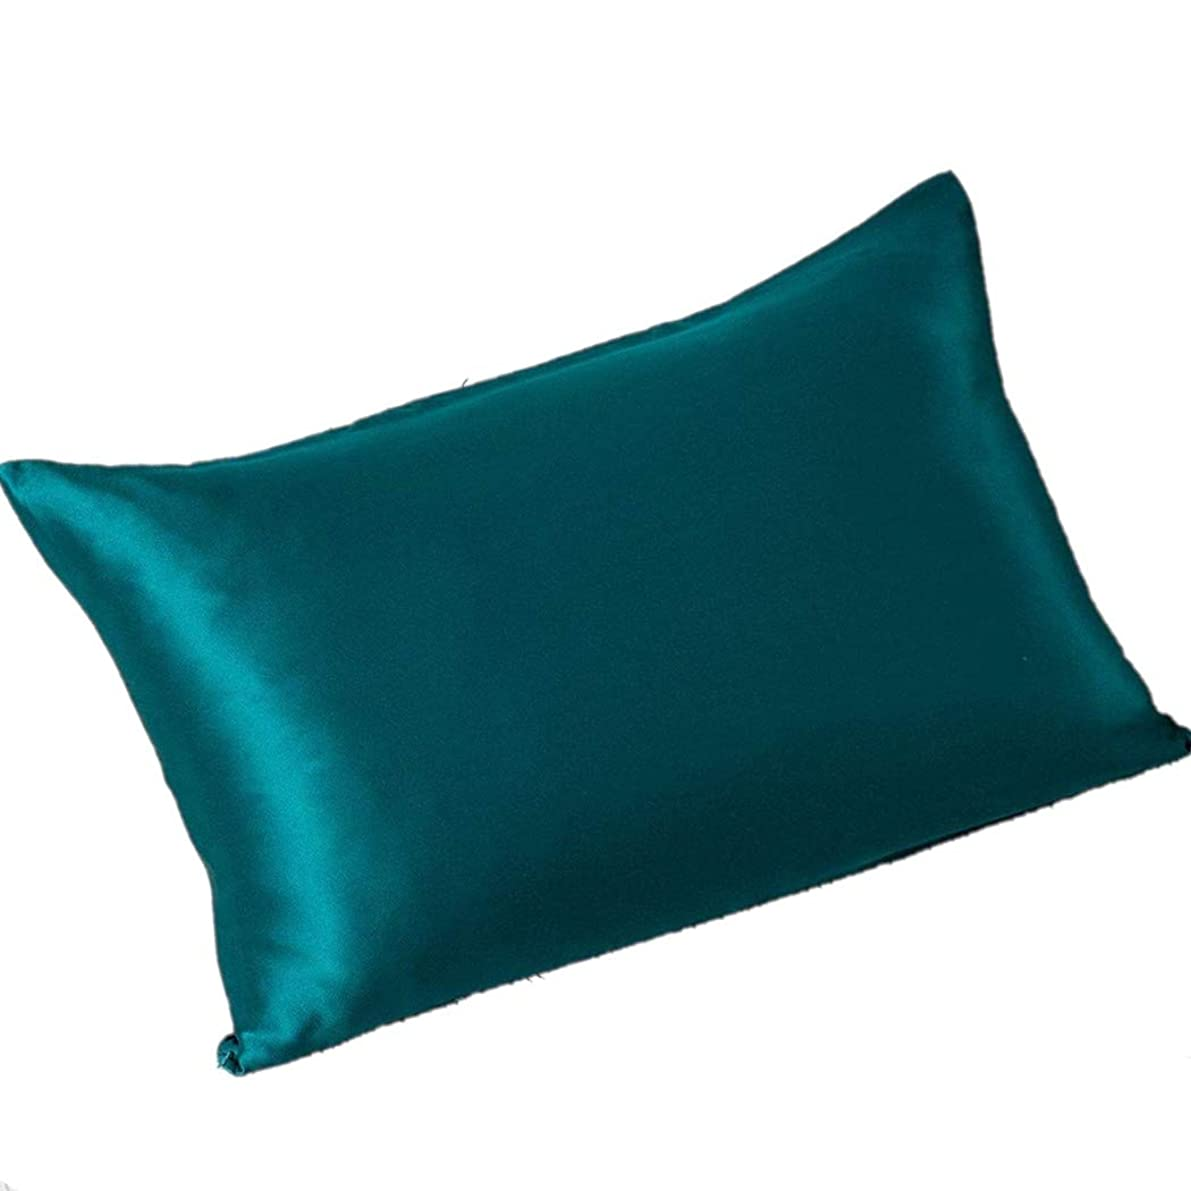 CrazyGo 100% Mulberry Silk Pillowcase for Hair and Skin Both Sides Slip Silk,19 Momme, 600 Thread Count with Hidden Zipper, Standard Size,1pc (Peacock Blue 2, Standard (20